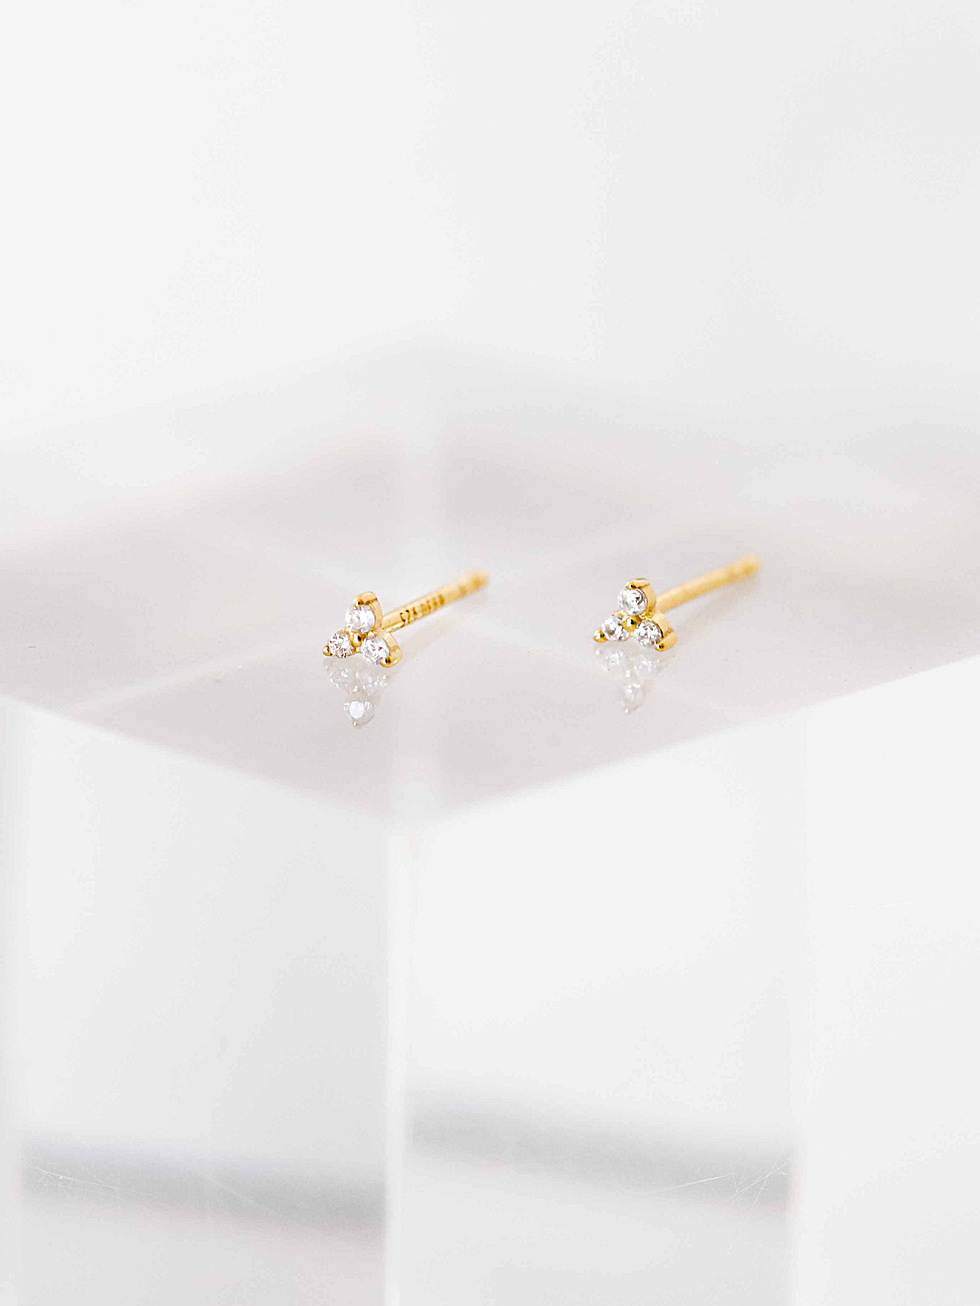 MICRO DOTS gold earrings